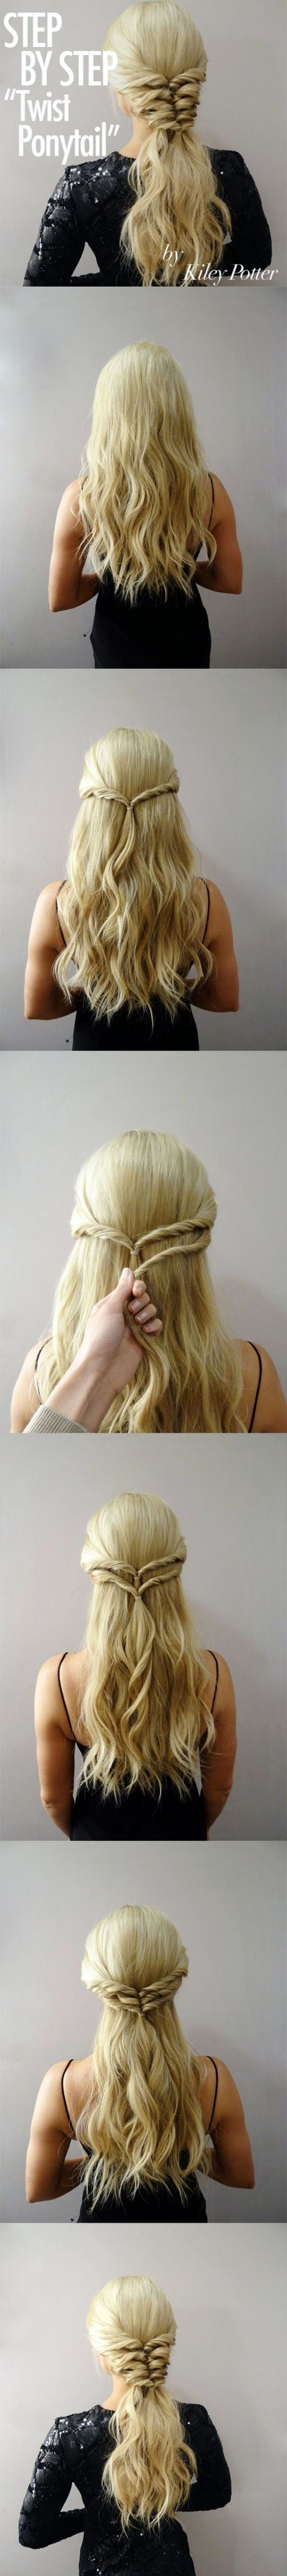 veryeasy hairstyles for verybusy mornings hair and beauty